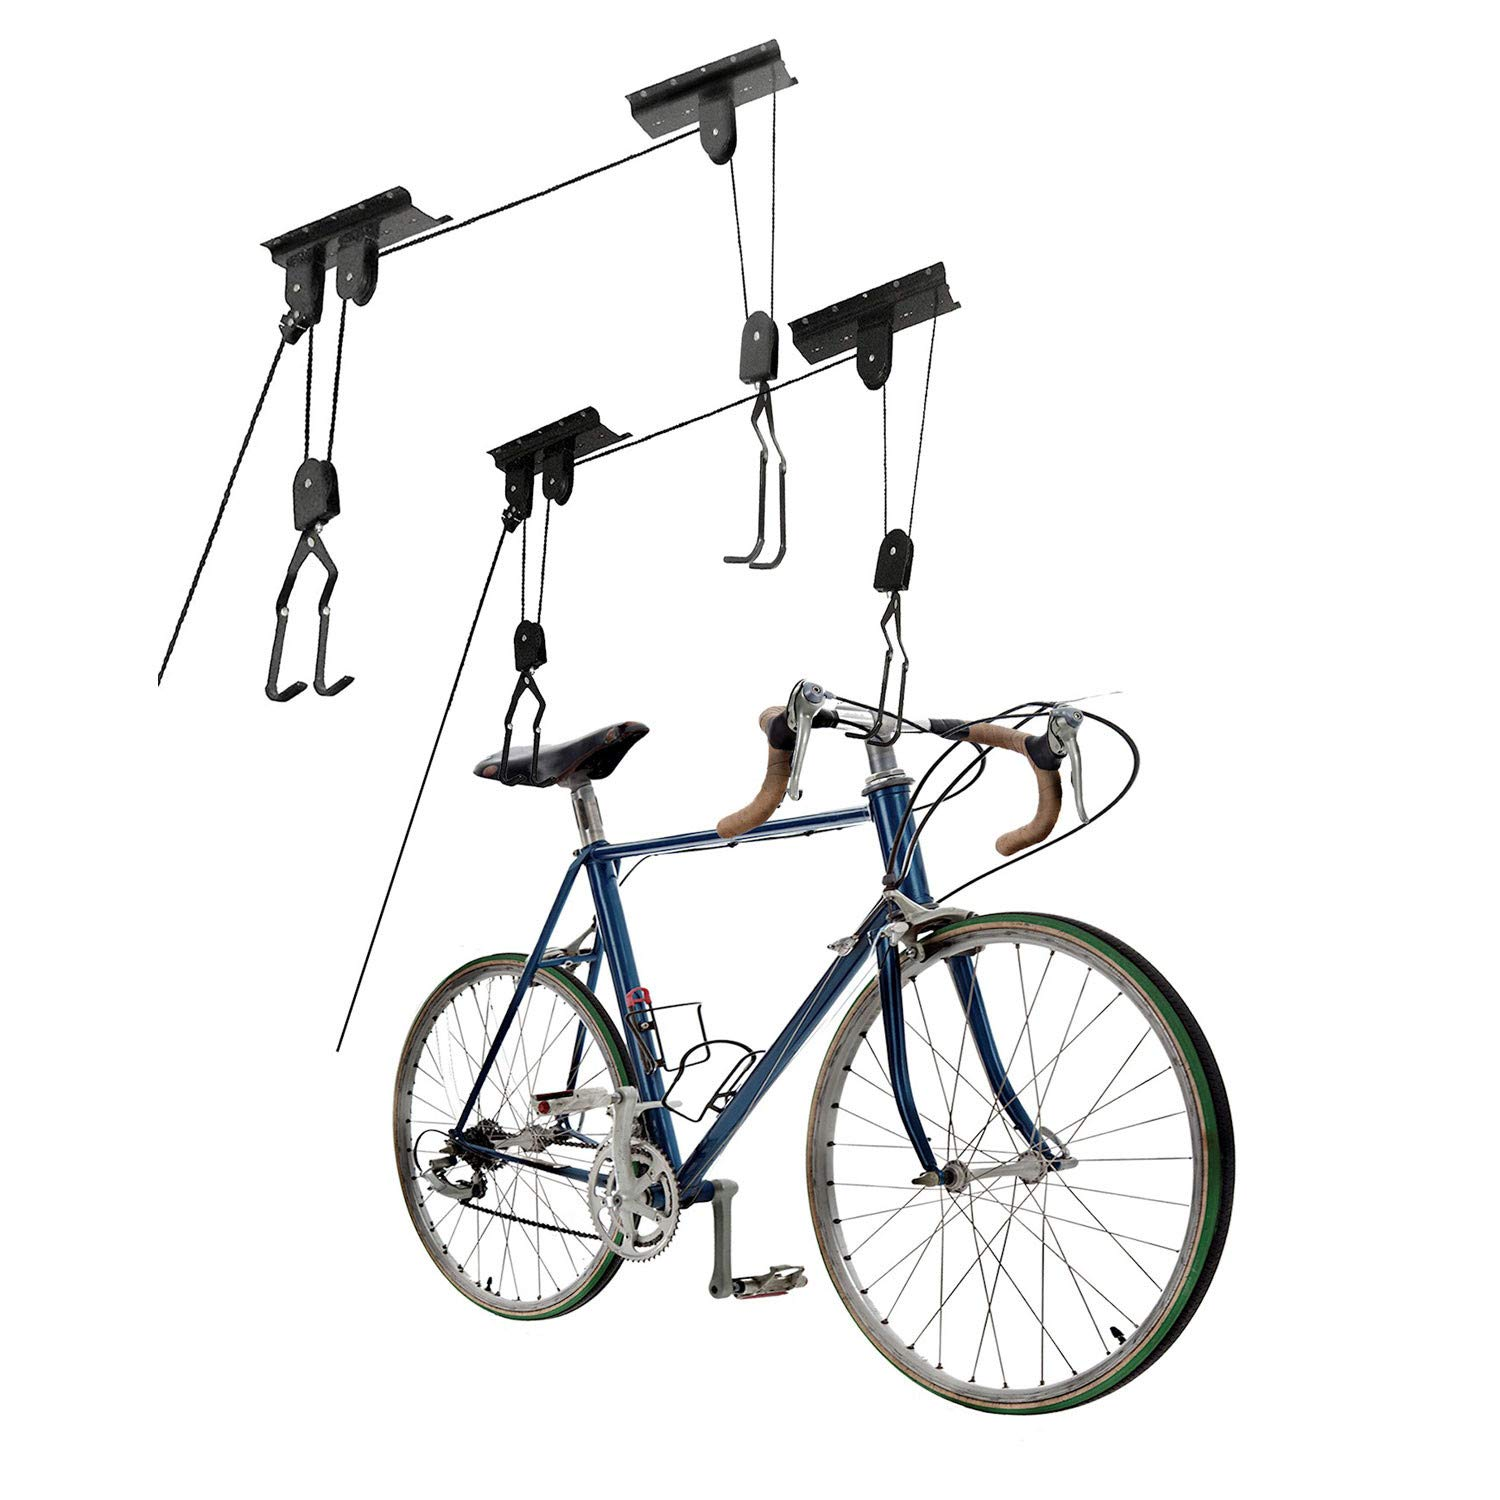 Great Working Tools Bike Hoists Set of 2, Hanging Ladder Lifts - Garage Ceiling Mount 55 lb Capacity Heavy Duty Hooks and Pulleys - Convenient Bicycle or Ladder Storage Hangers by Great Working Tools